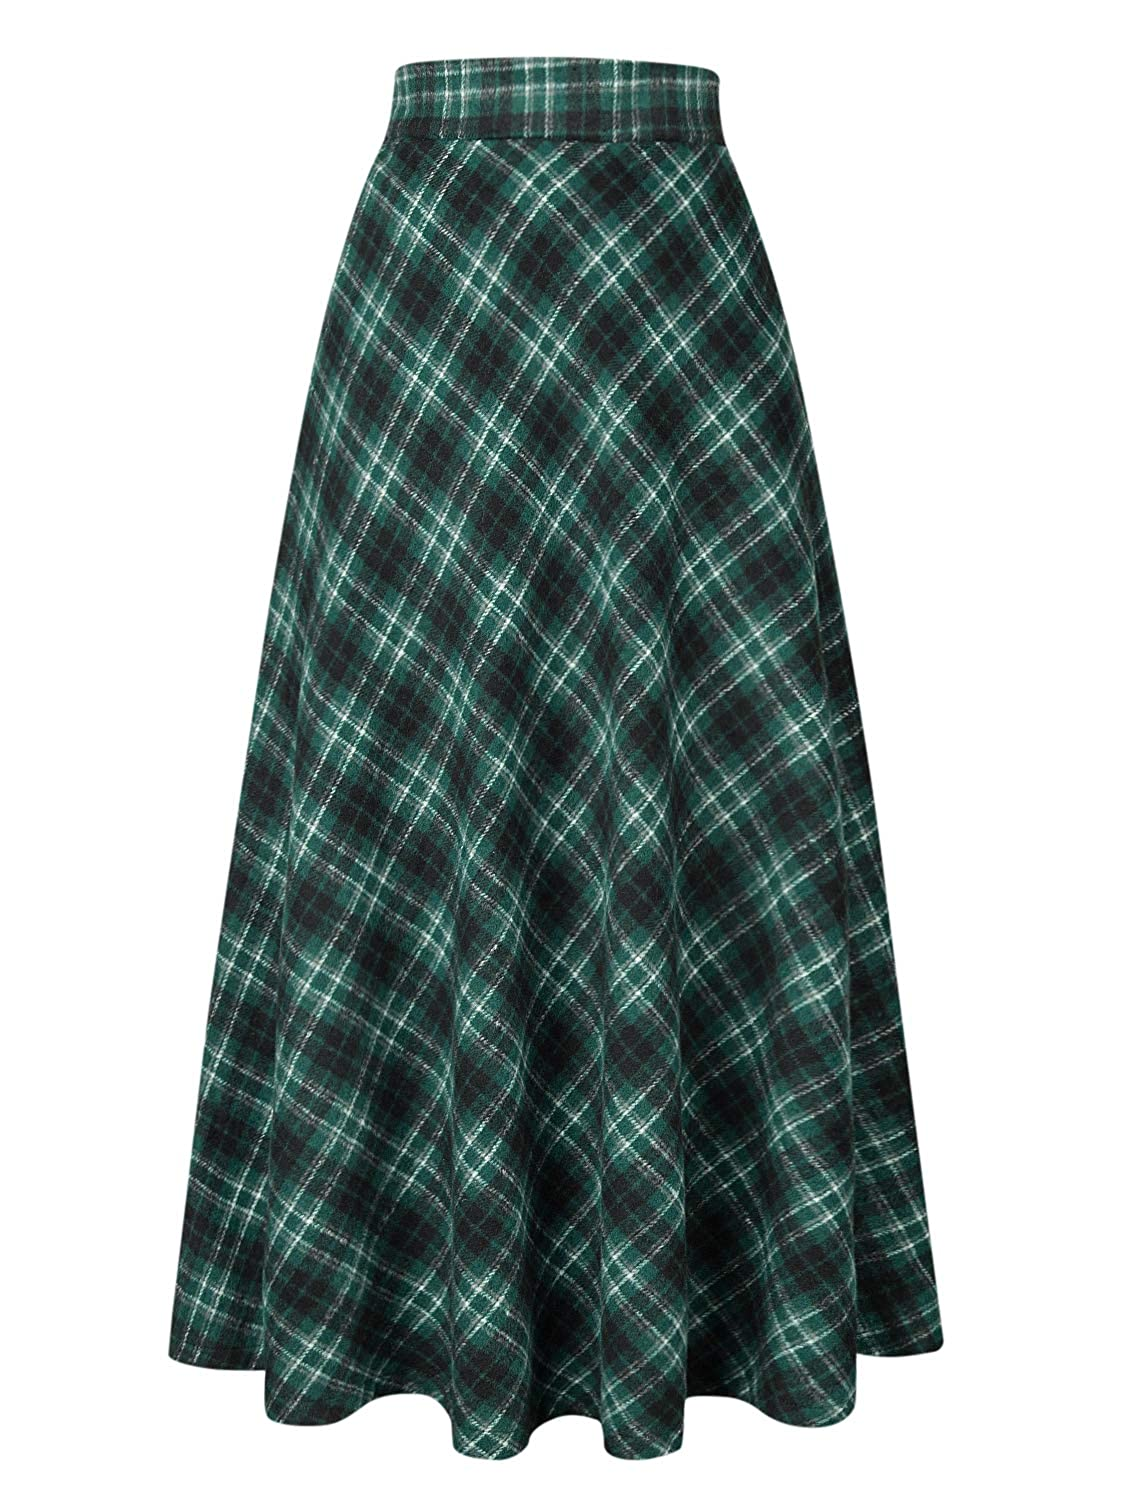 1950s Swing Skirt, Poodle Skirt, Pencil Skirts Choies Womens High Waist A-line Flared Long Skirt Winter Fall Midi Skirt $38.99 AT vintagedancer.com